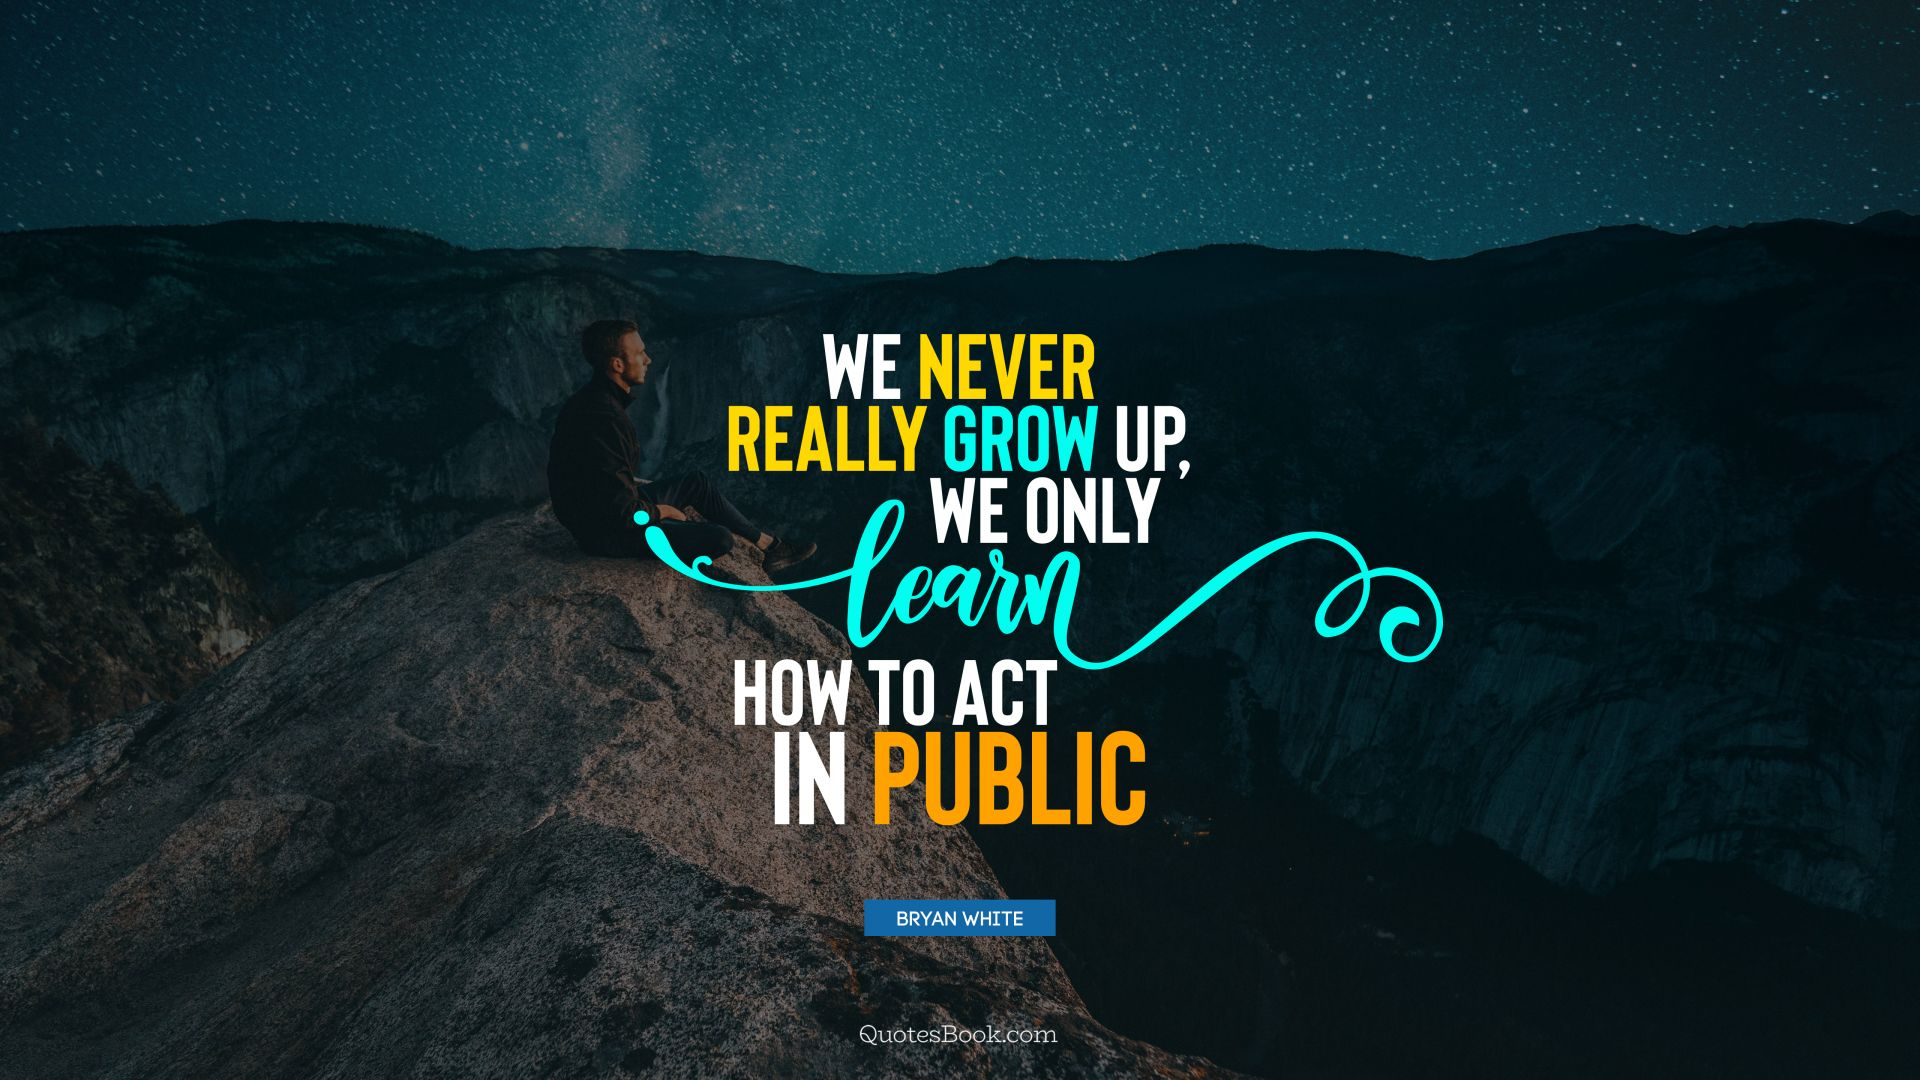 We never really grow up, we only learn how to act in public. - Quote by Bryan White